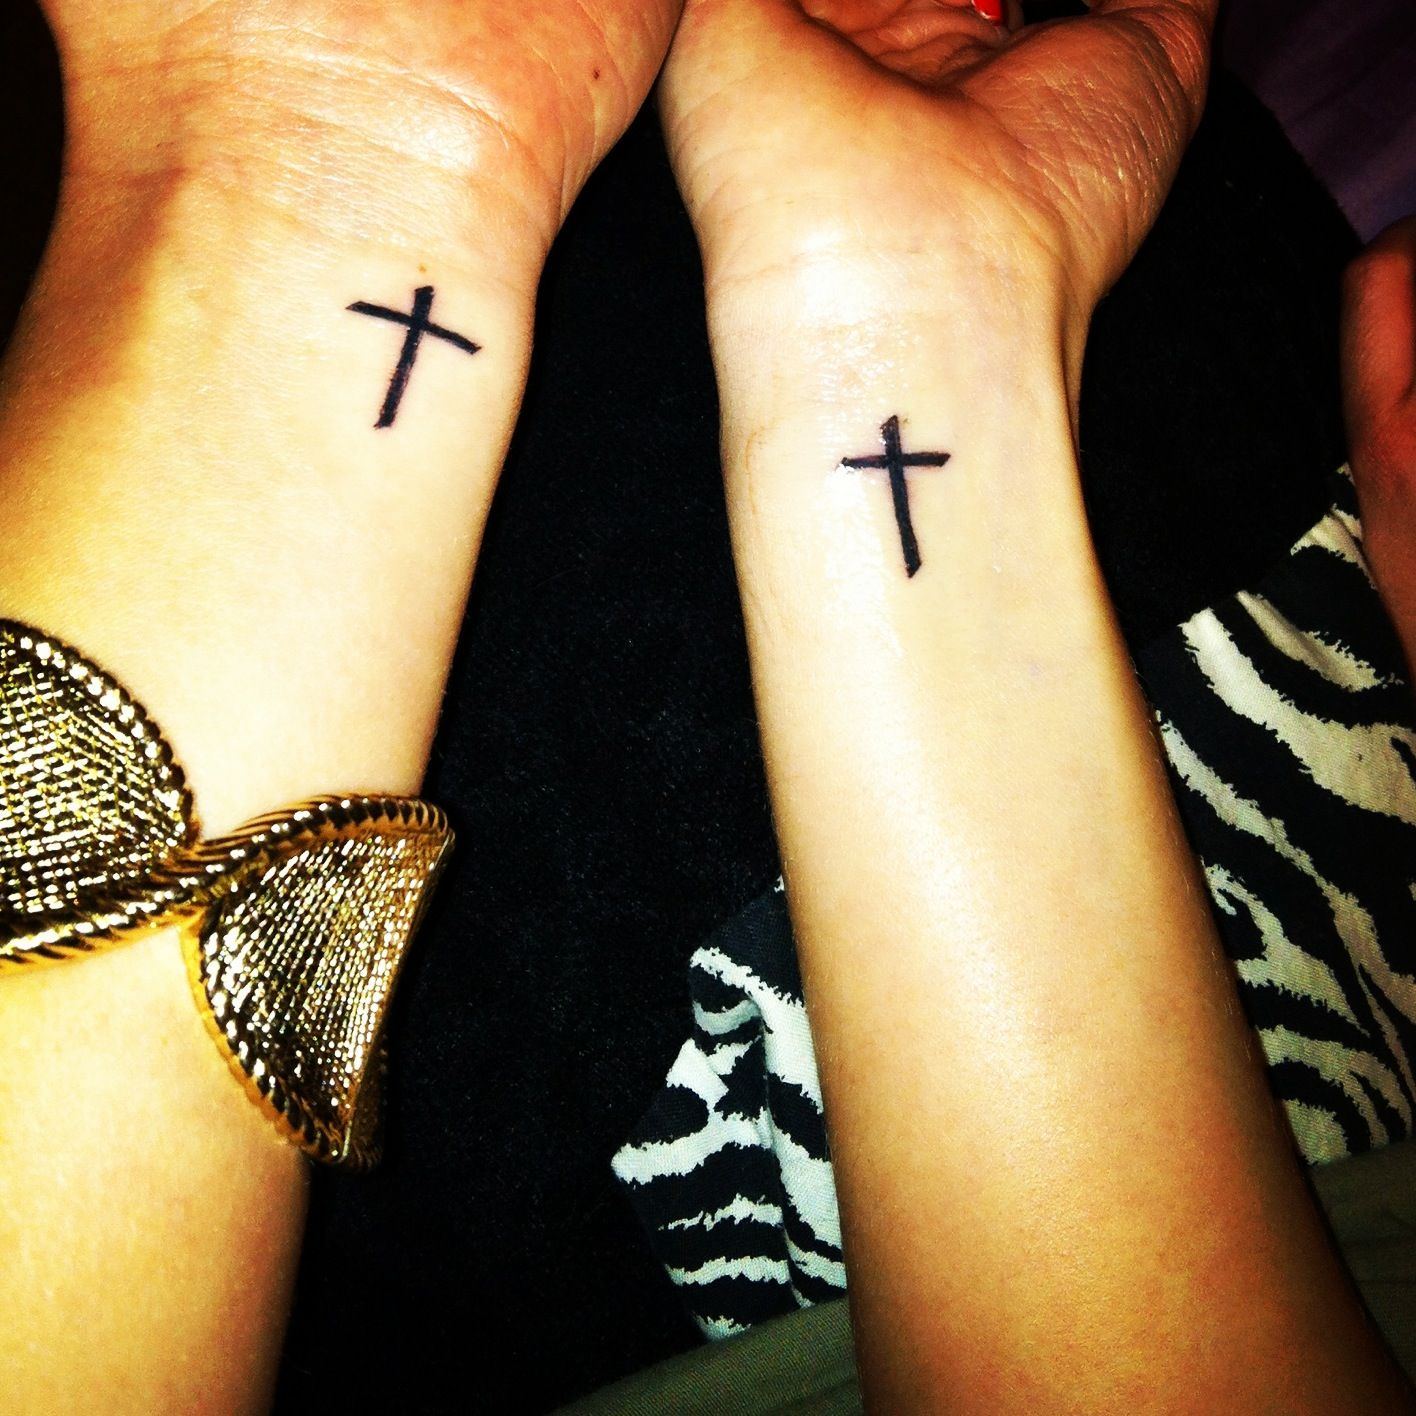 Matching tattoos with my sister tattoos p pinterest for Sister tattoos pinterest